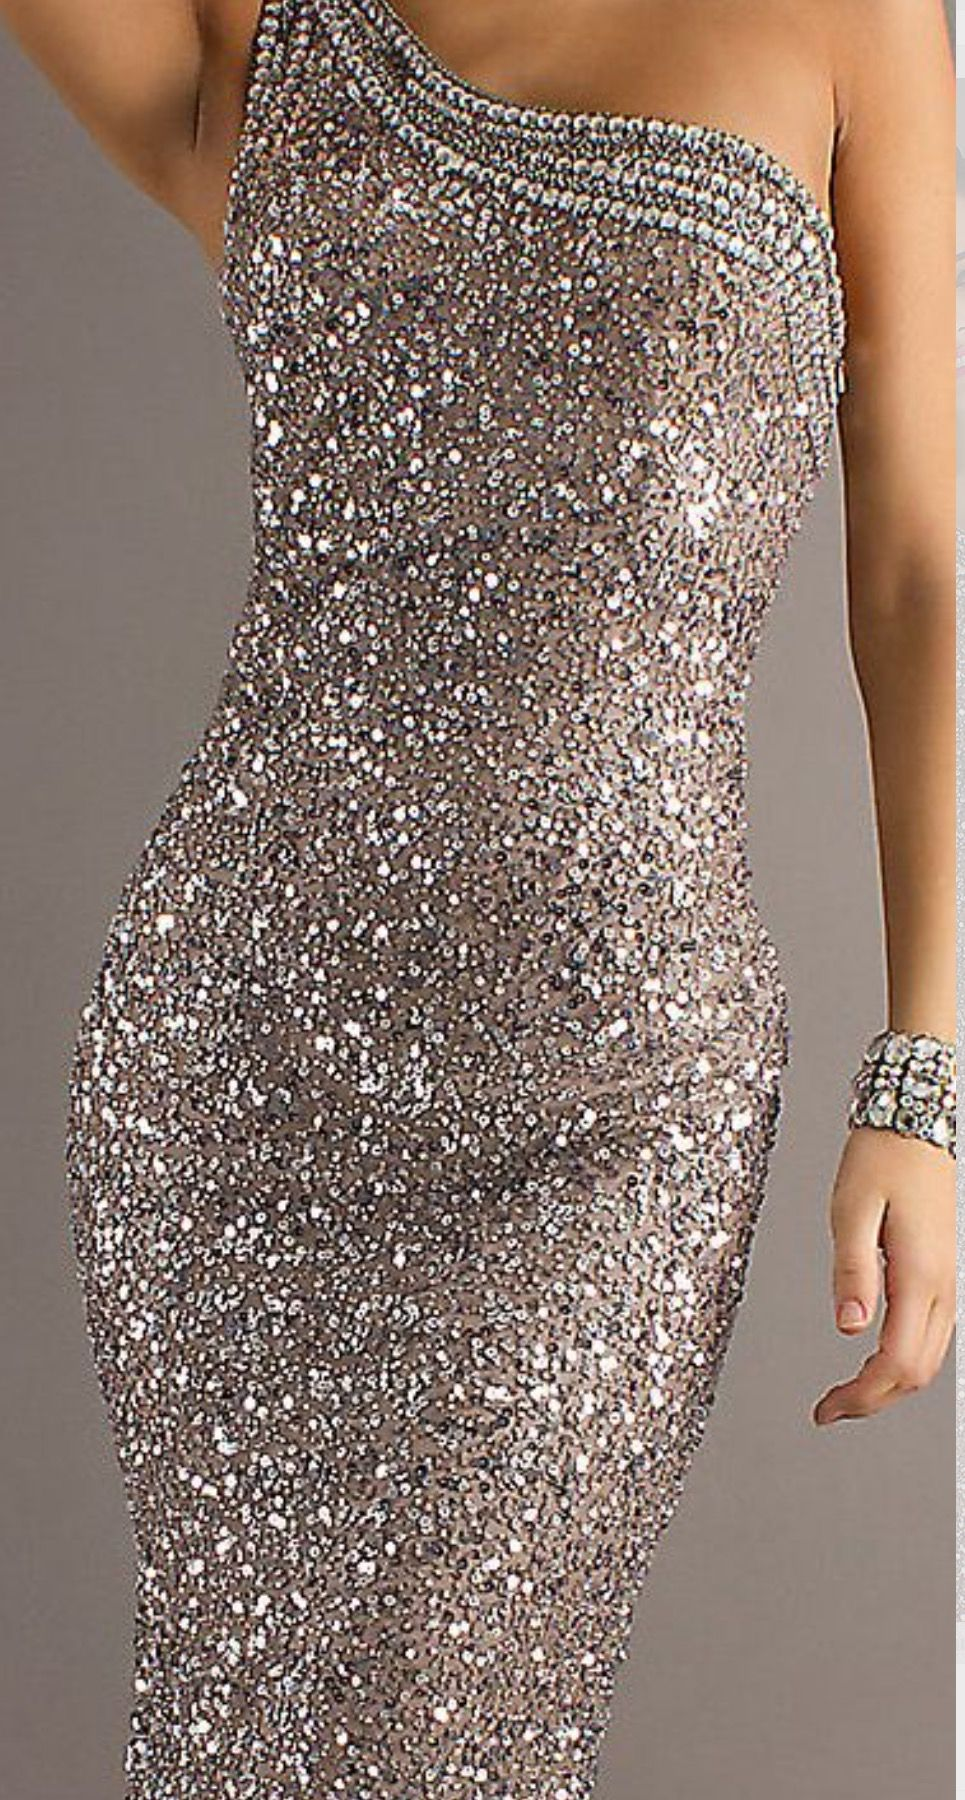 Dress With Sparkle Dazzling Dress Glamorous Evening Gowns Trending Dresses [ 1800 x 965 Pixel ]